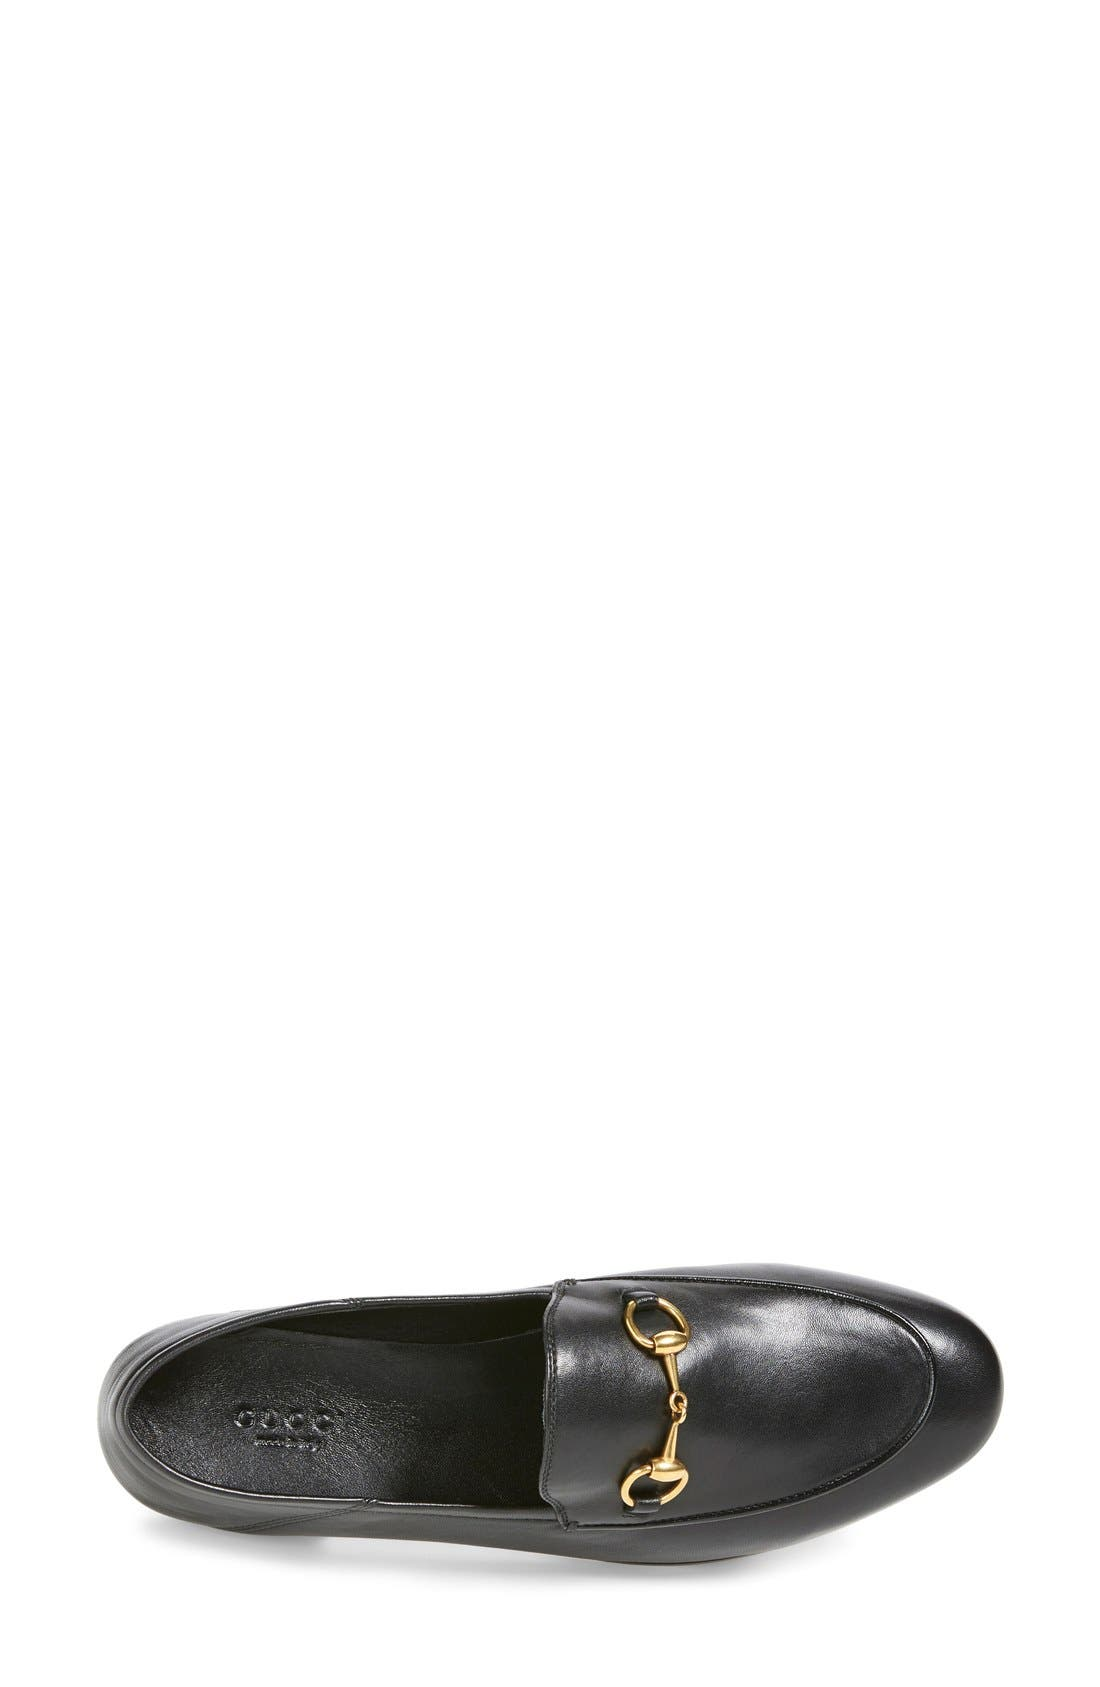 Alternate Image 3  - Gucci Brixton Convertible Loafer (Women)